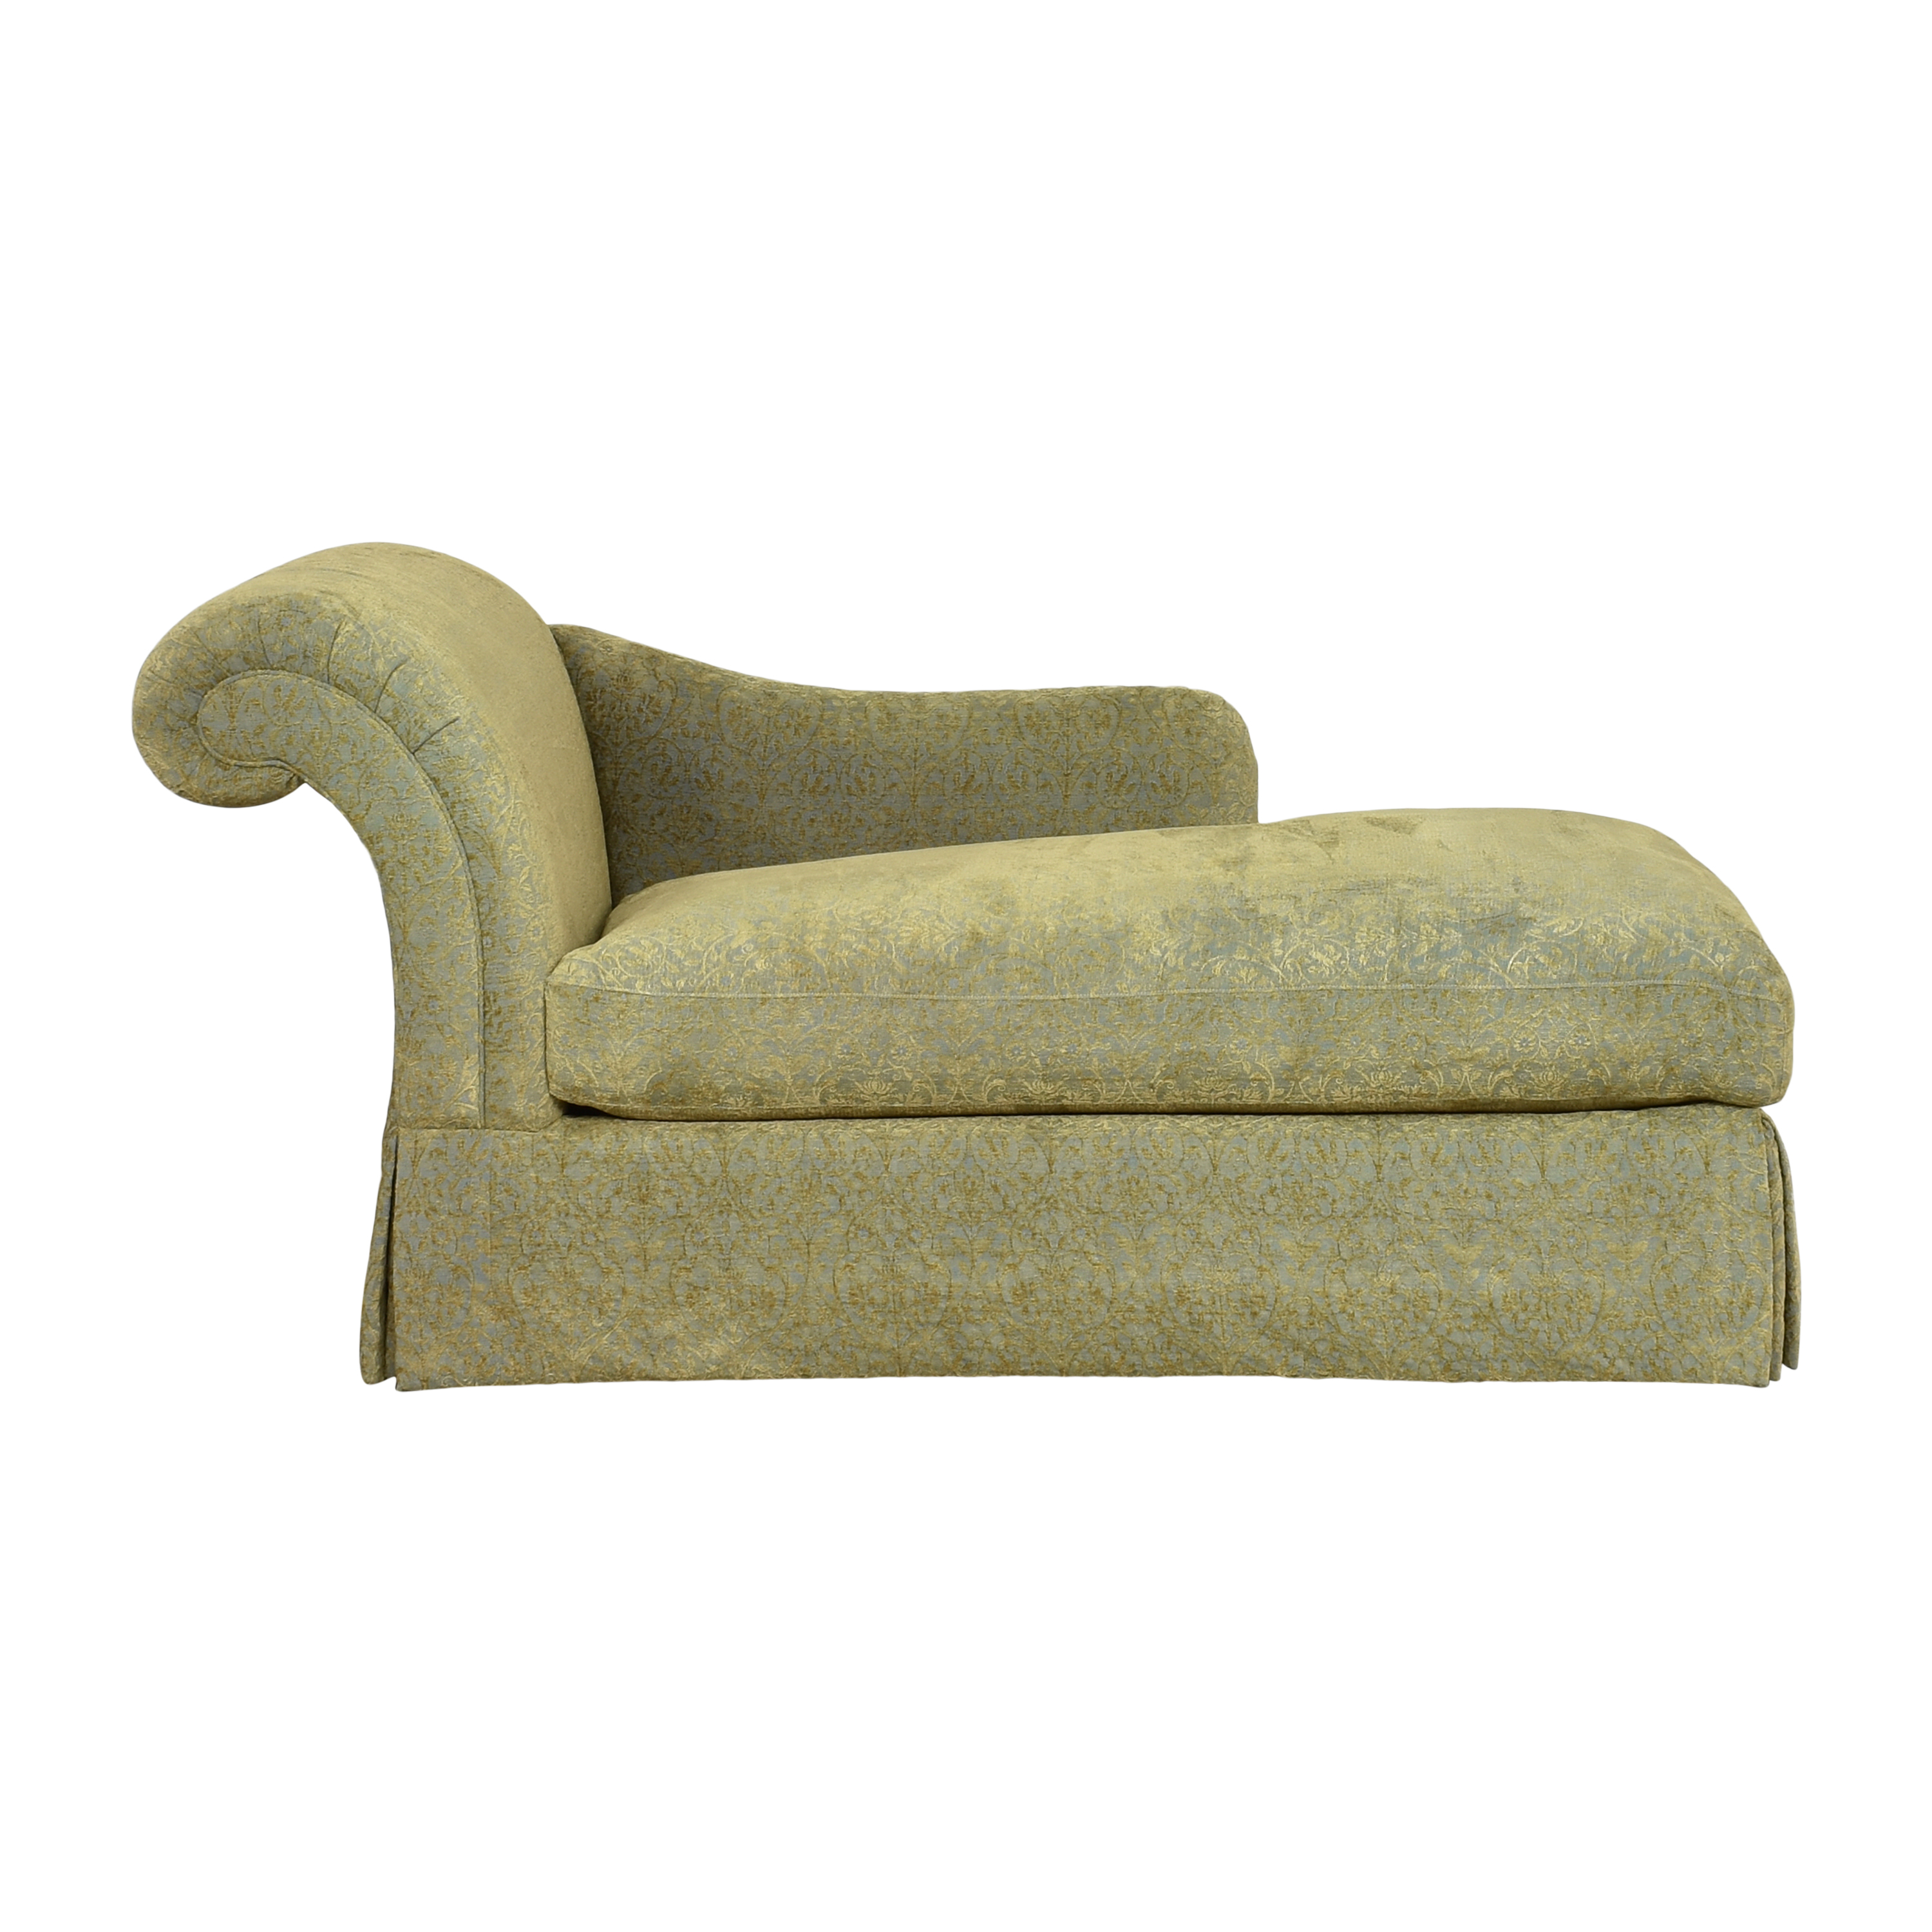 Baker Furniture Baker Furniture Chaise Lounge discount